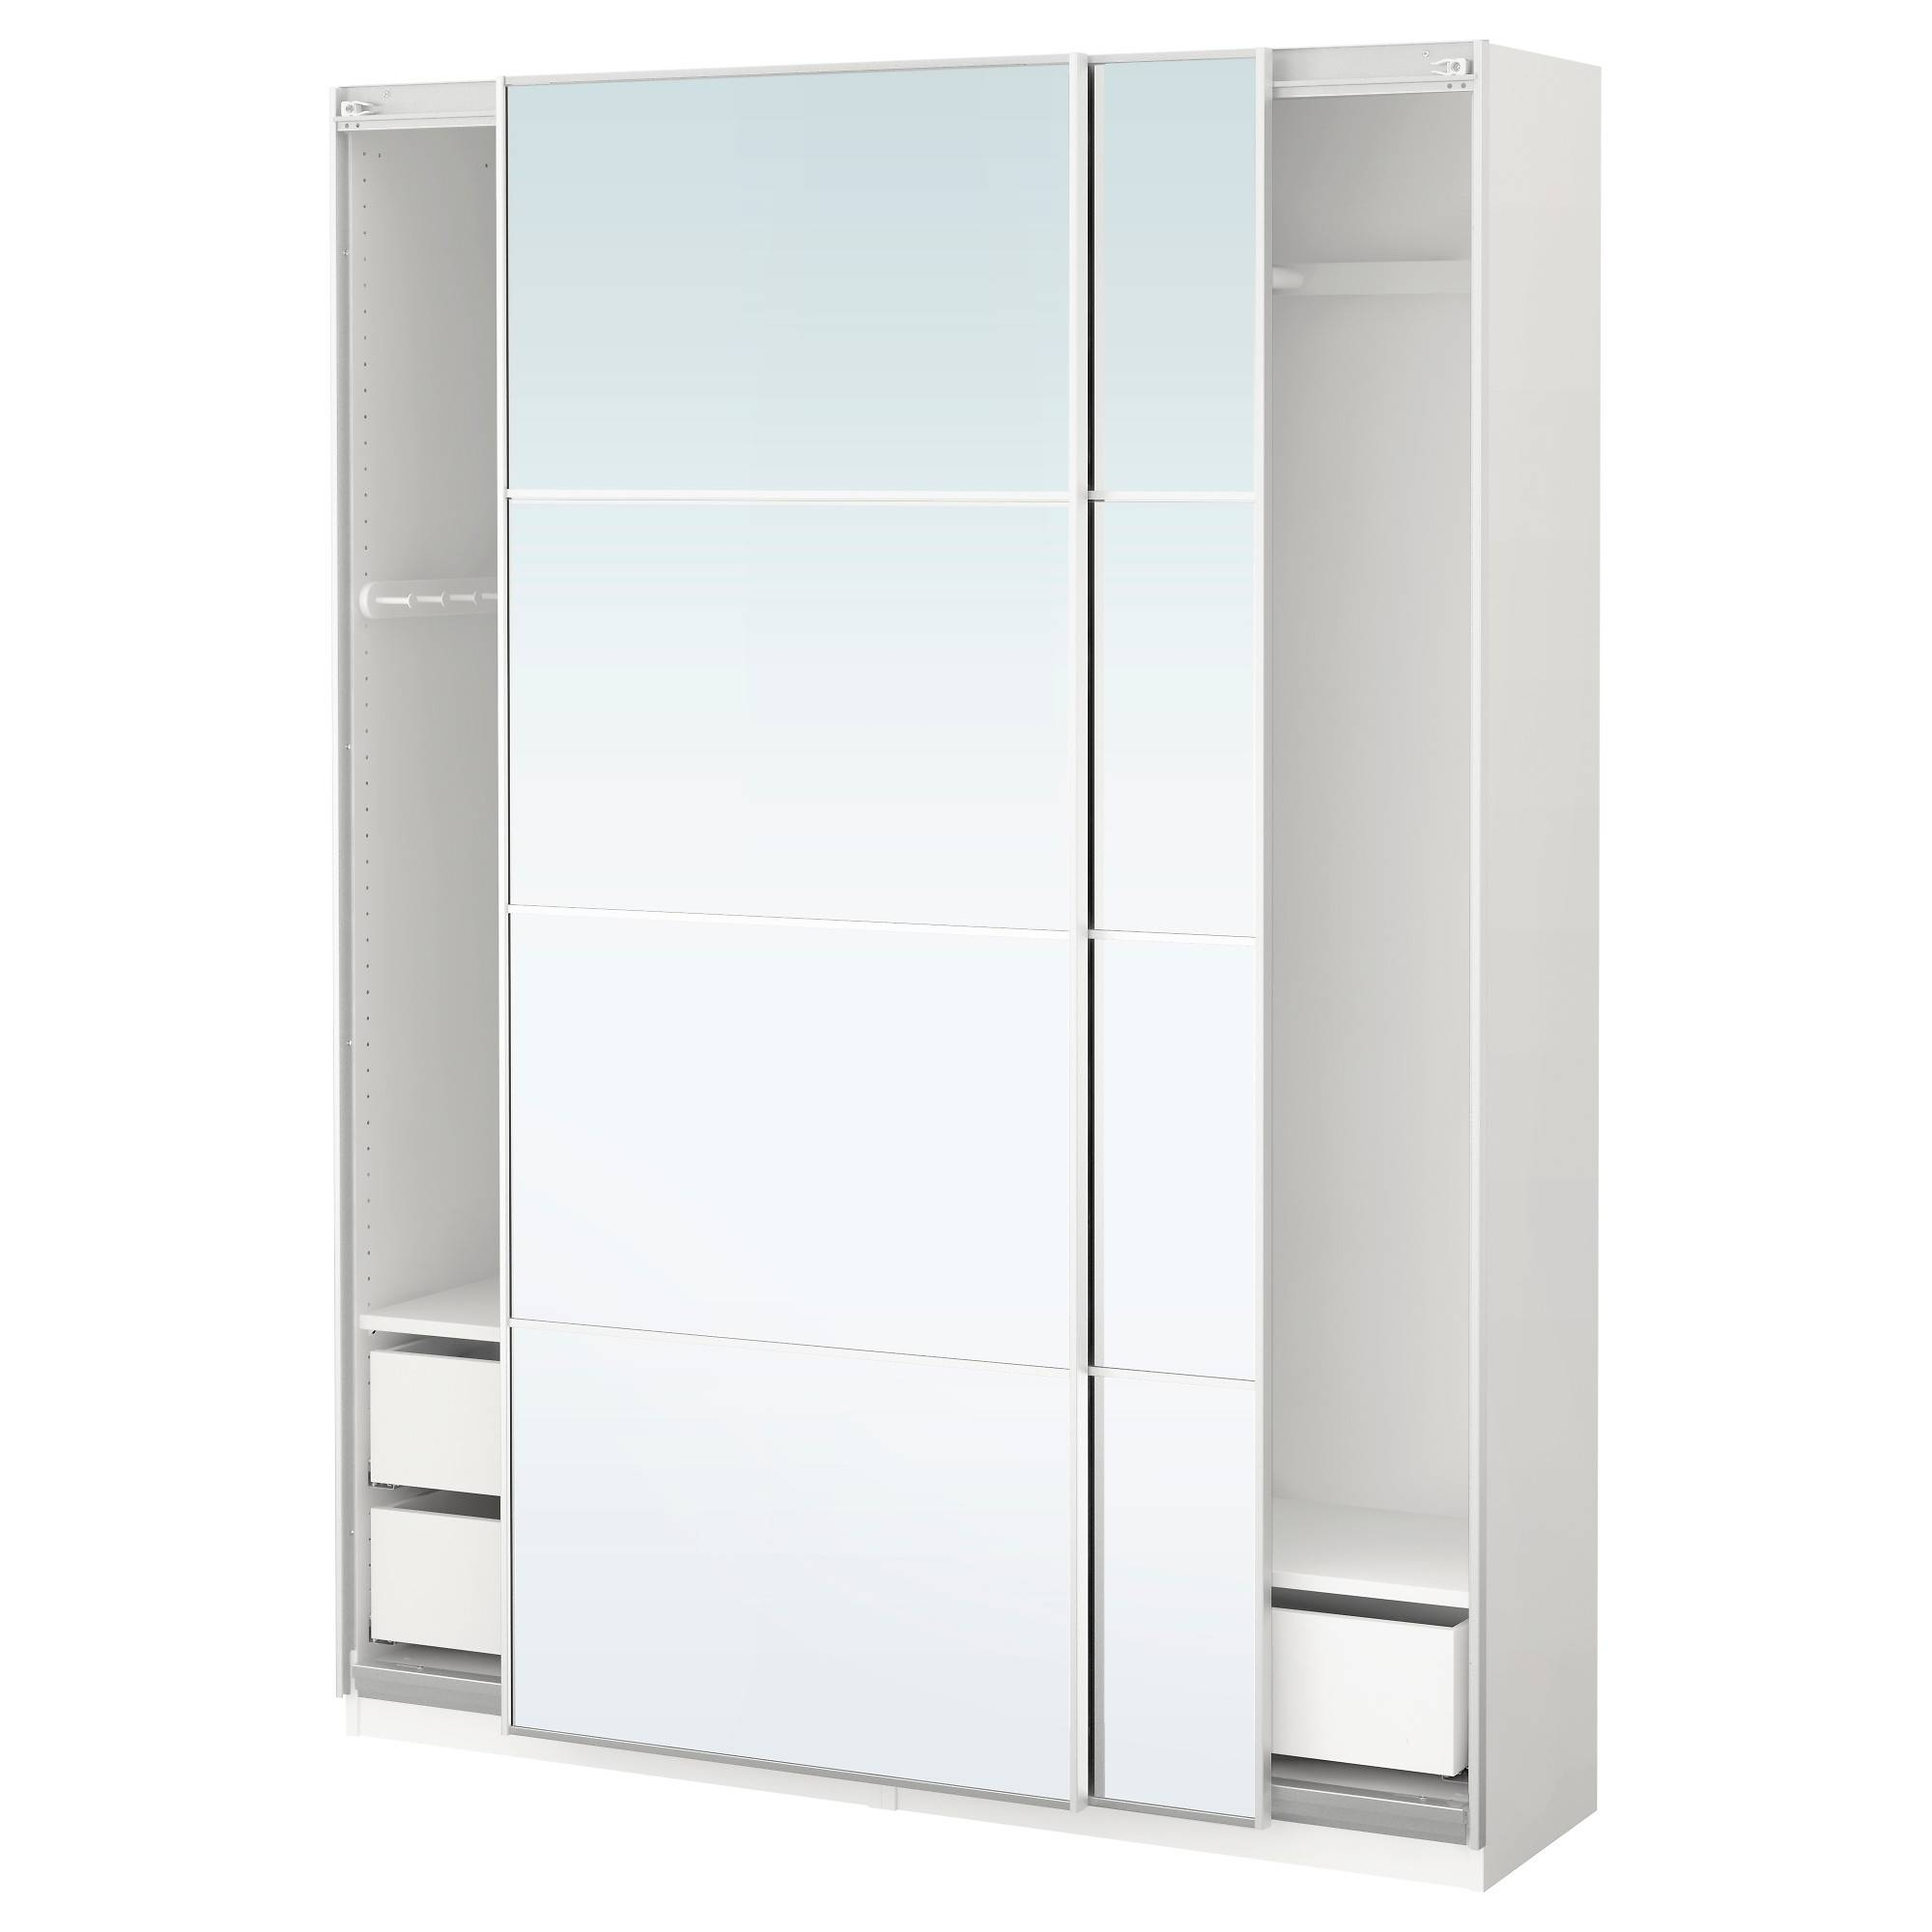 Wardrobes, Armoires & Closets - Ikea with Cheap Mirrored Wardrobes (Image 15 of 15)